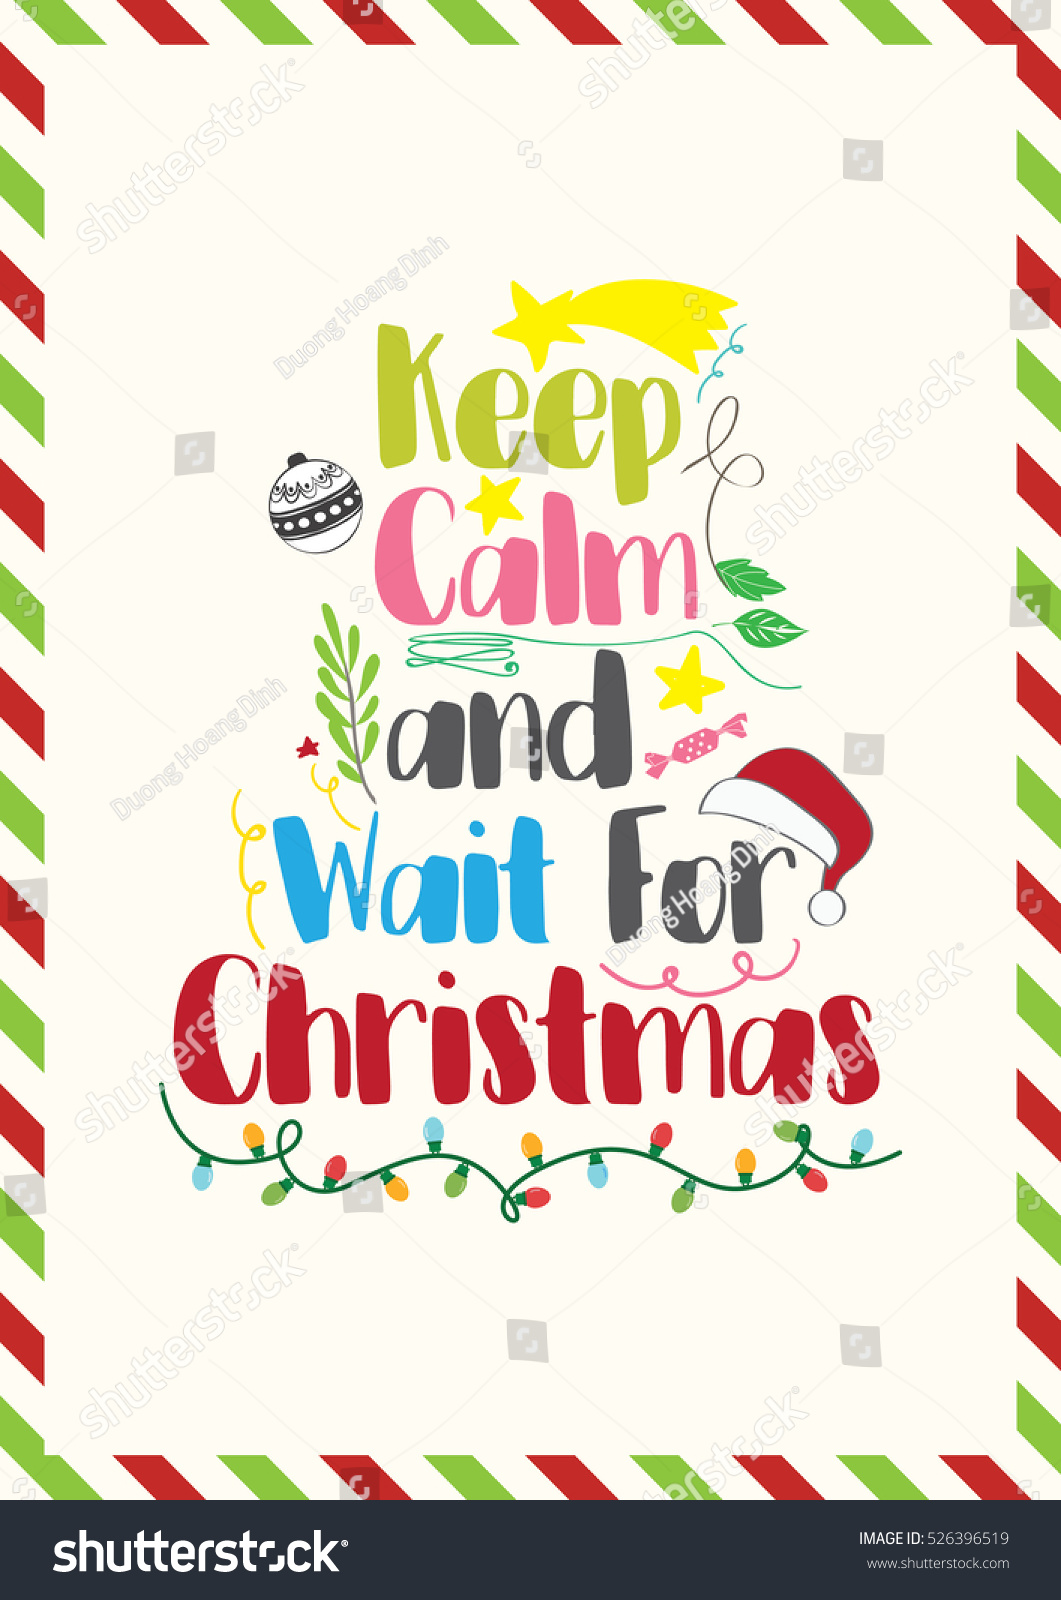 Christmas Quote Keep Calm Wait Christmas Stock Vector (Royalty Free ...